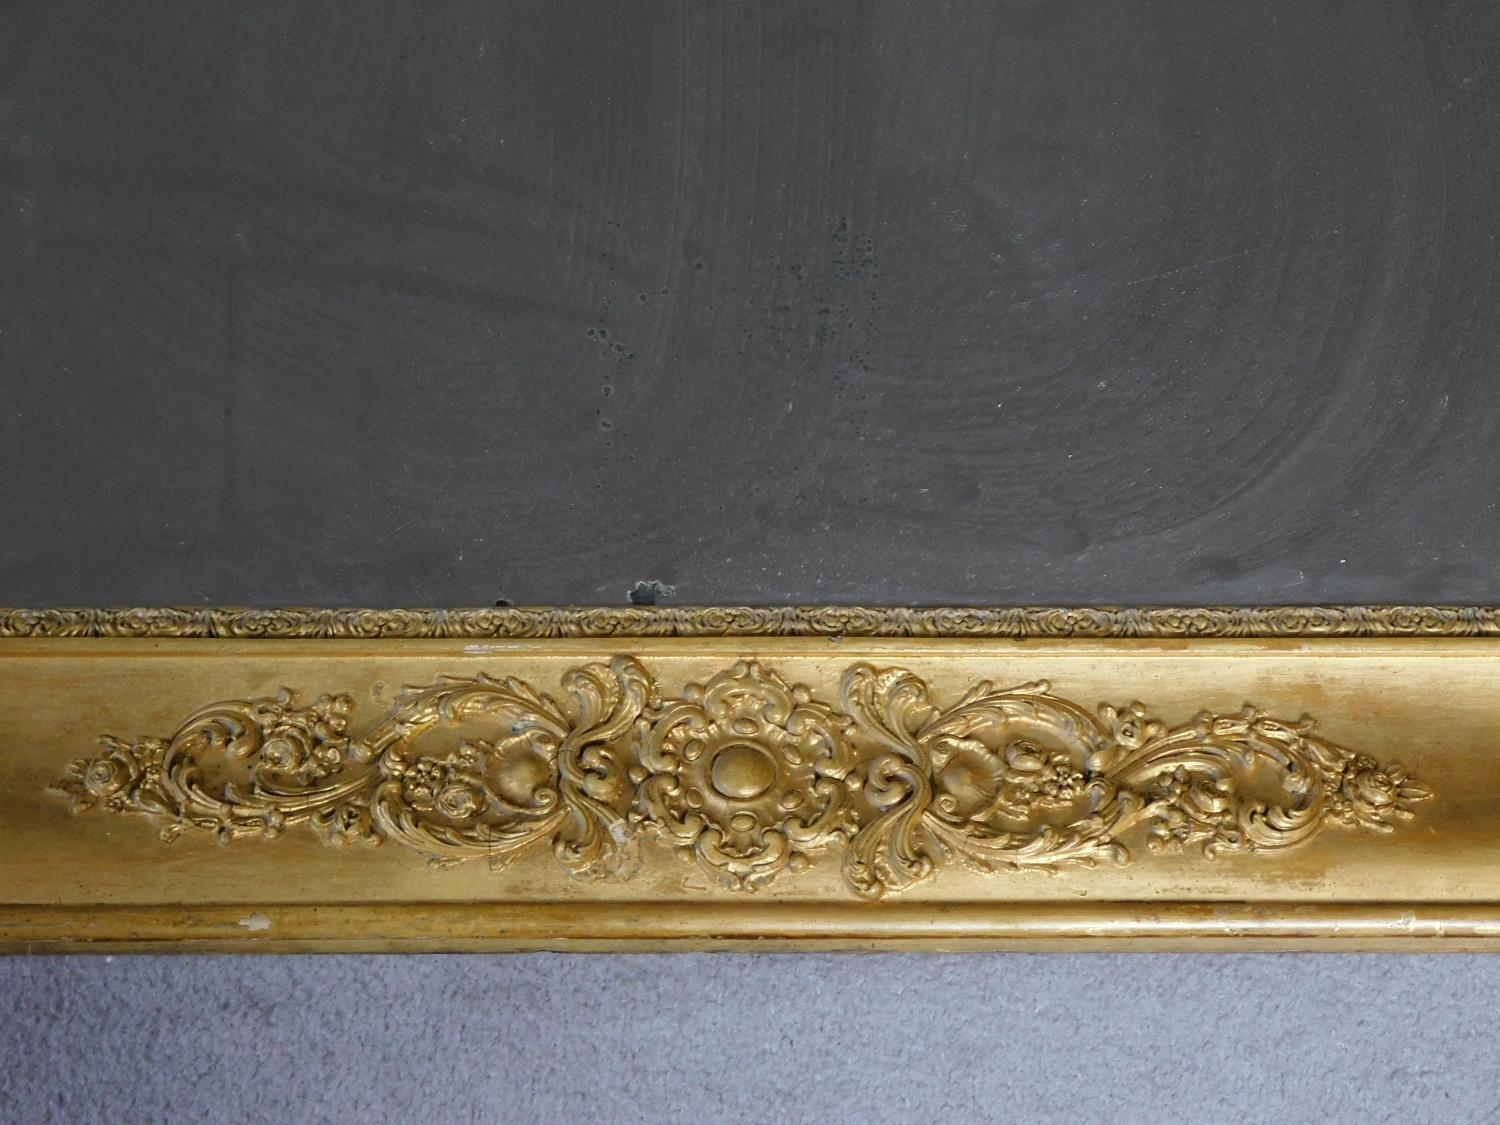 A very large early 19th century gilt framed and gesso moulded pier mirror with its original glass - Image 4 of 9